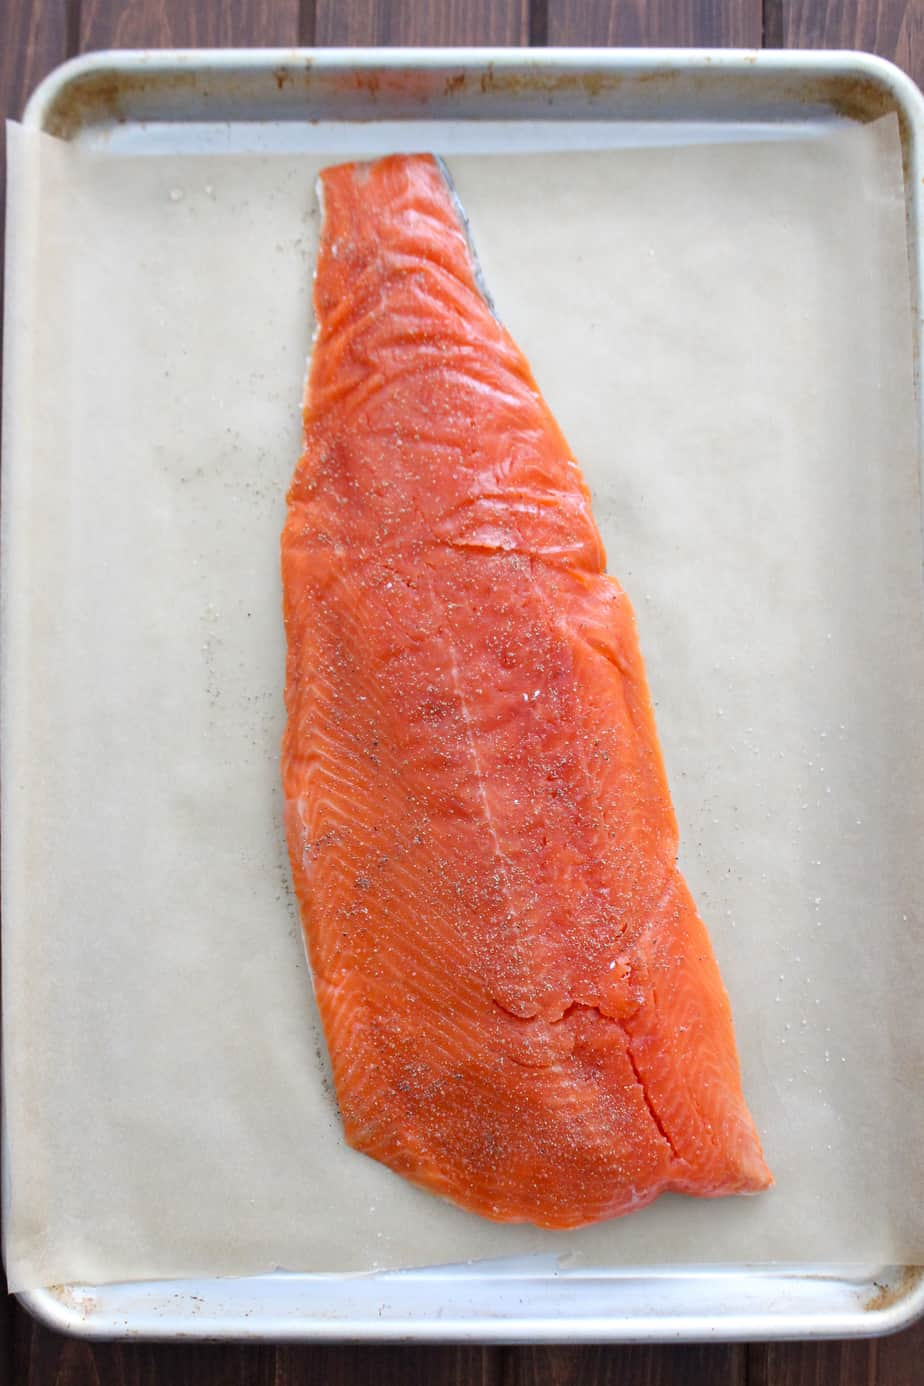 Raw Wild Moinkbox Salmon on Sheet Pan | Frugal Nutrition